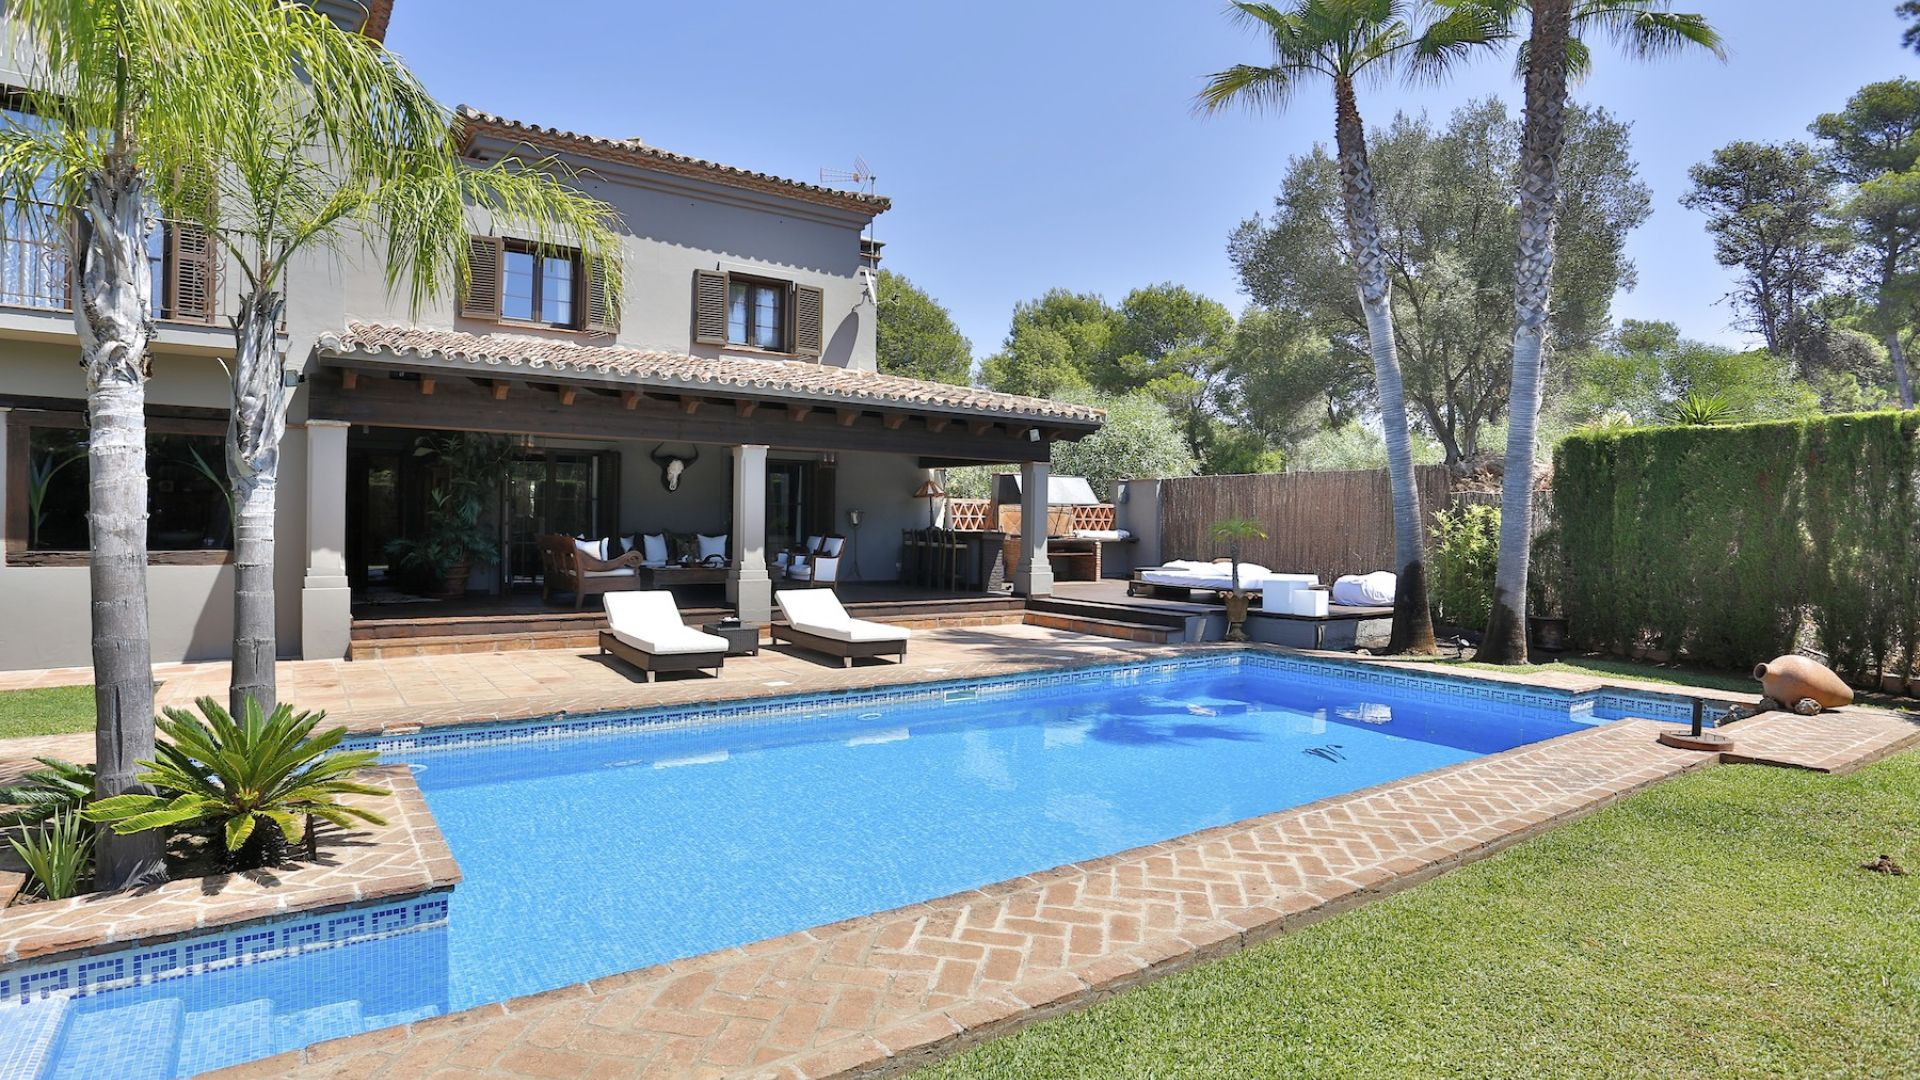 Single Family Home for Sale at A charming villa located 200m from the beach in Elvira Other Andalucia, Andalucia Spain